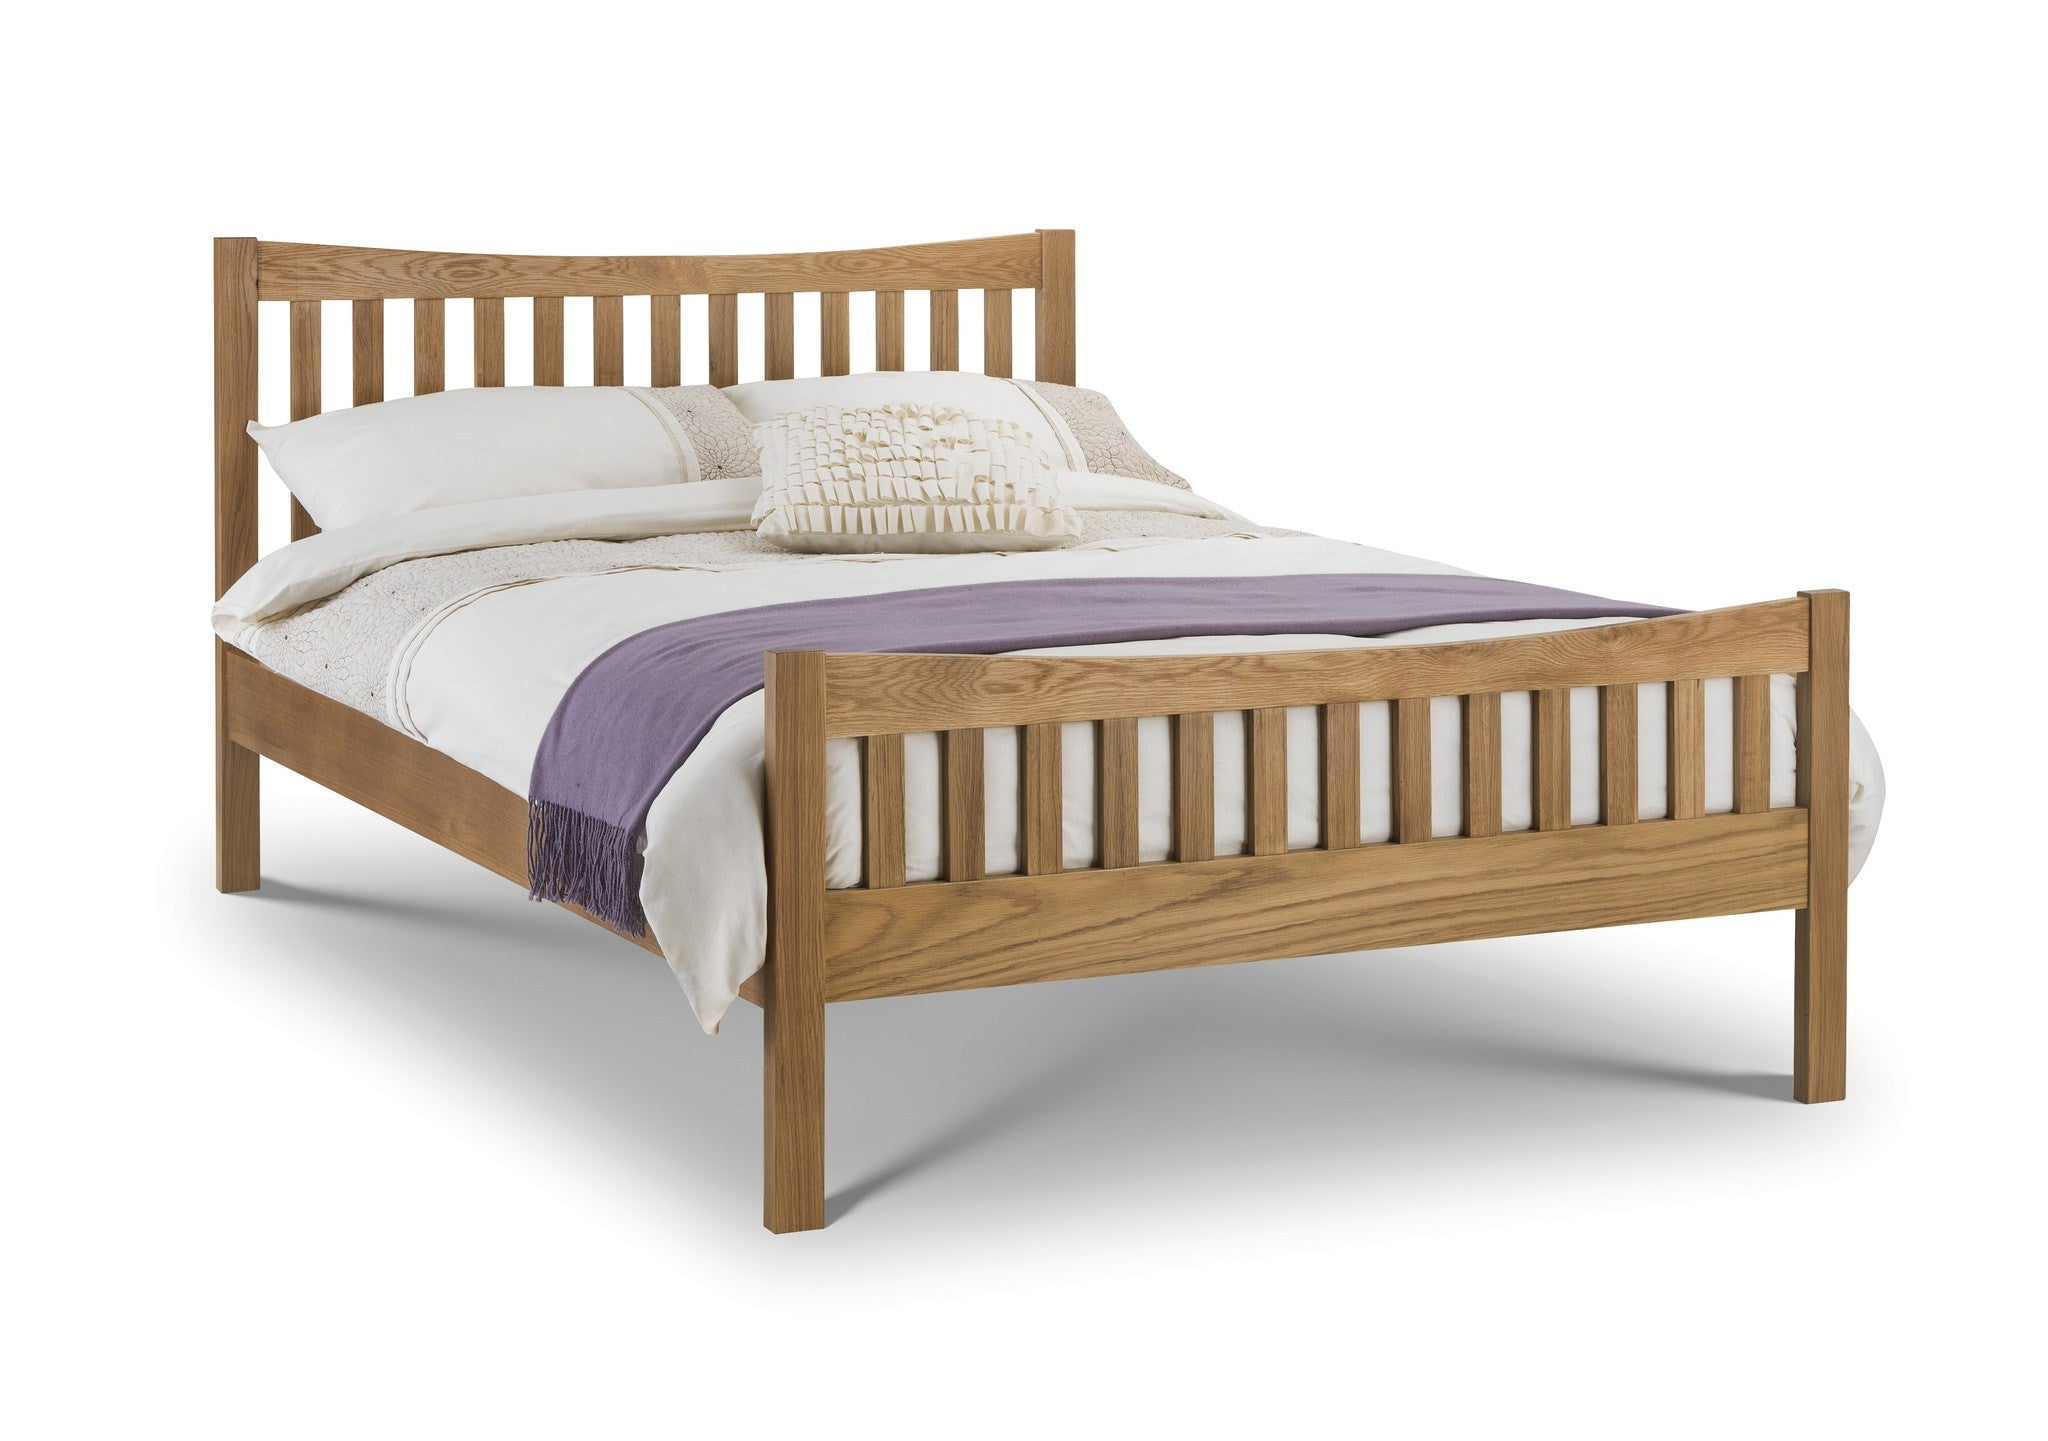 JULIAN BOWEN Bergamo Oak Bed